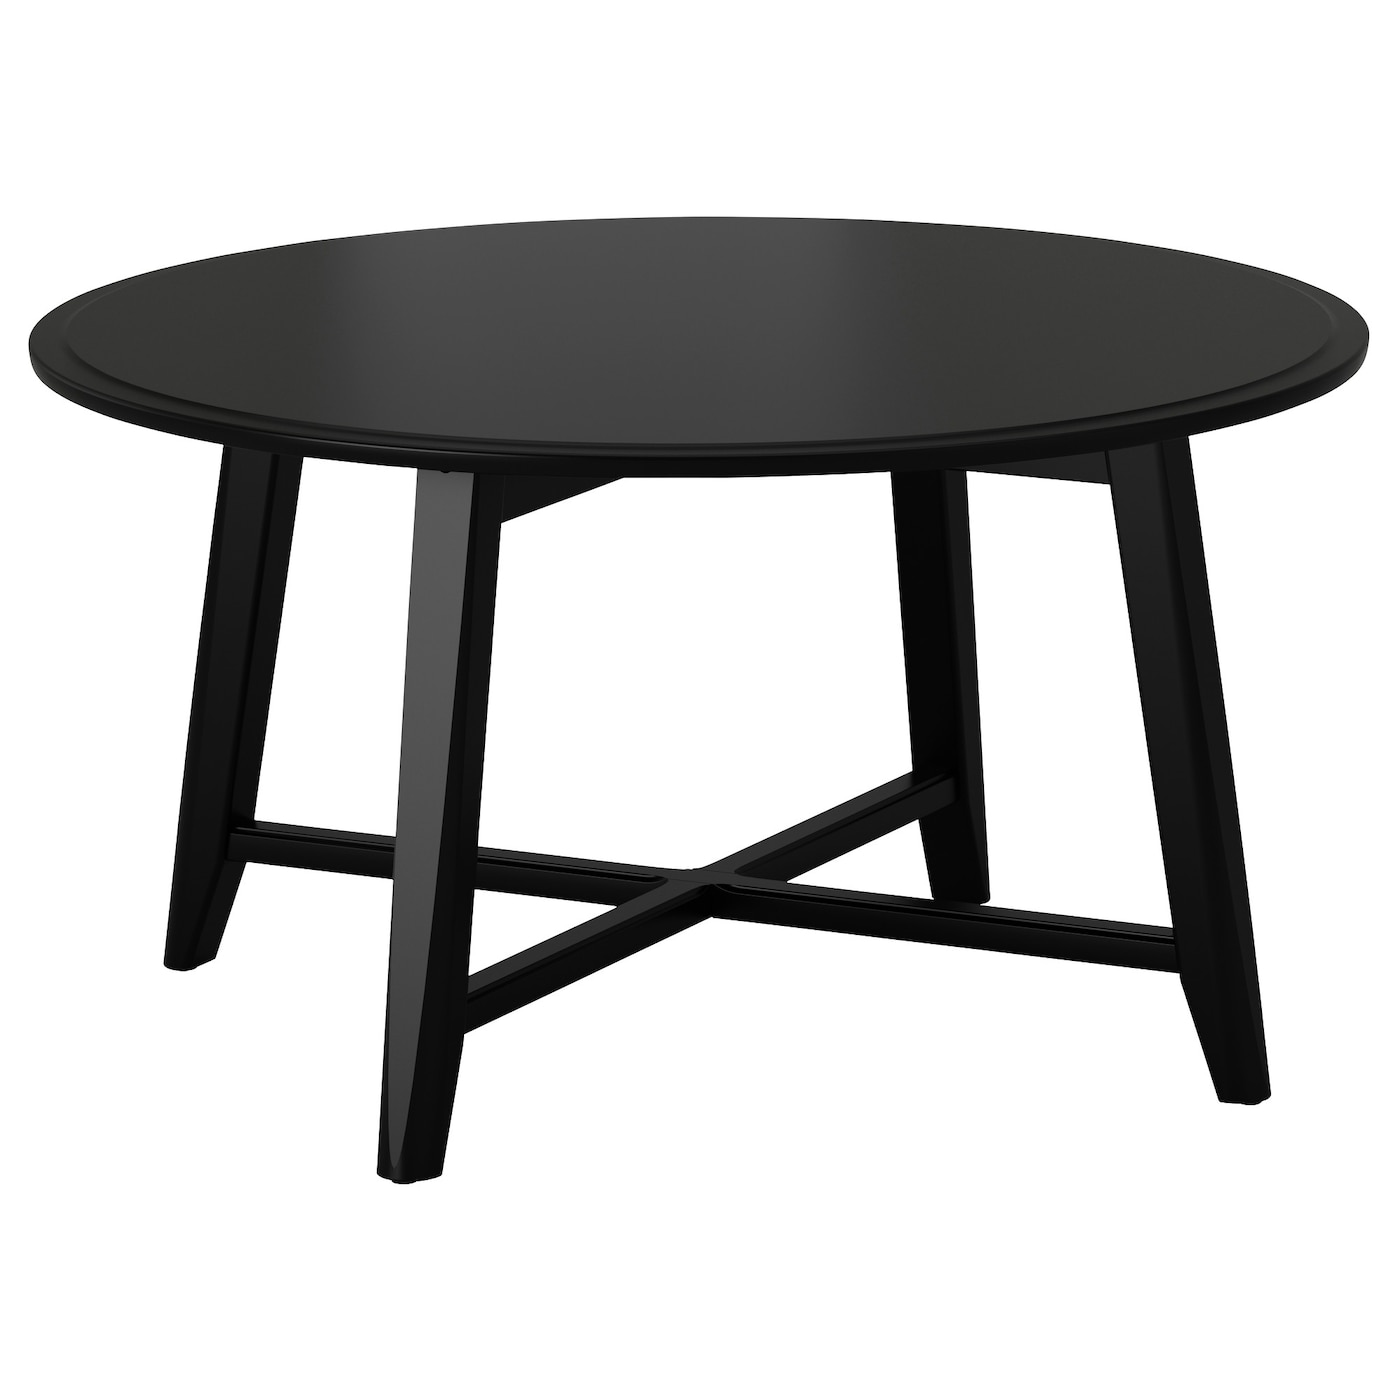 Kragsta coffee table black 90 cm ikea for Ikea end tables salon